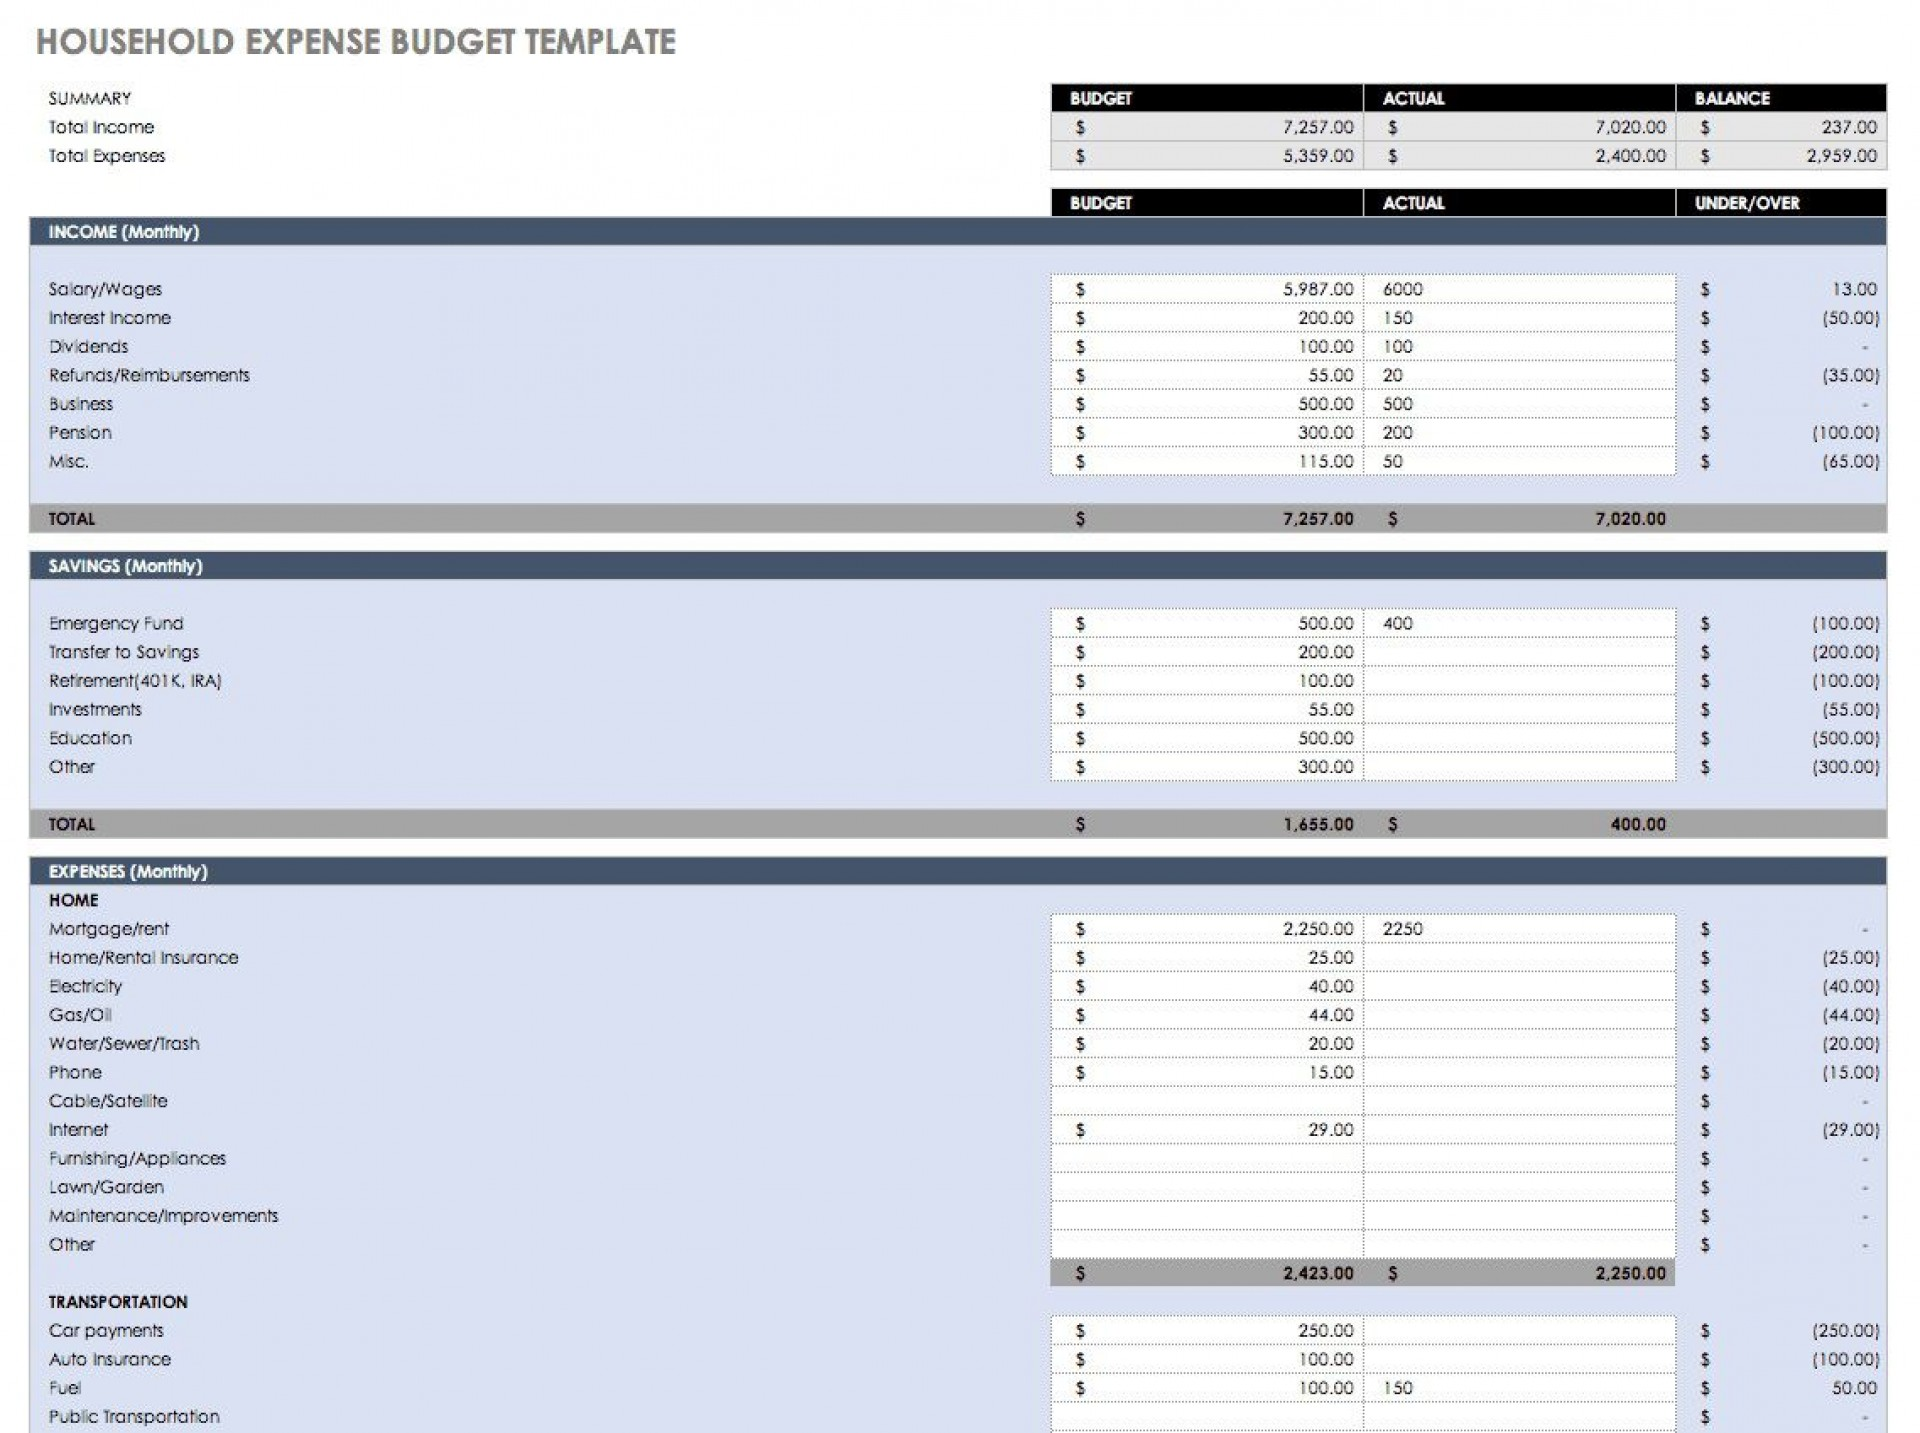 006 Archaicawful Excel Monthly Bill Template High Resolution  Expense Budget With Due Date Planner Uk1920